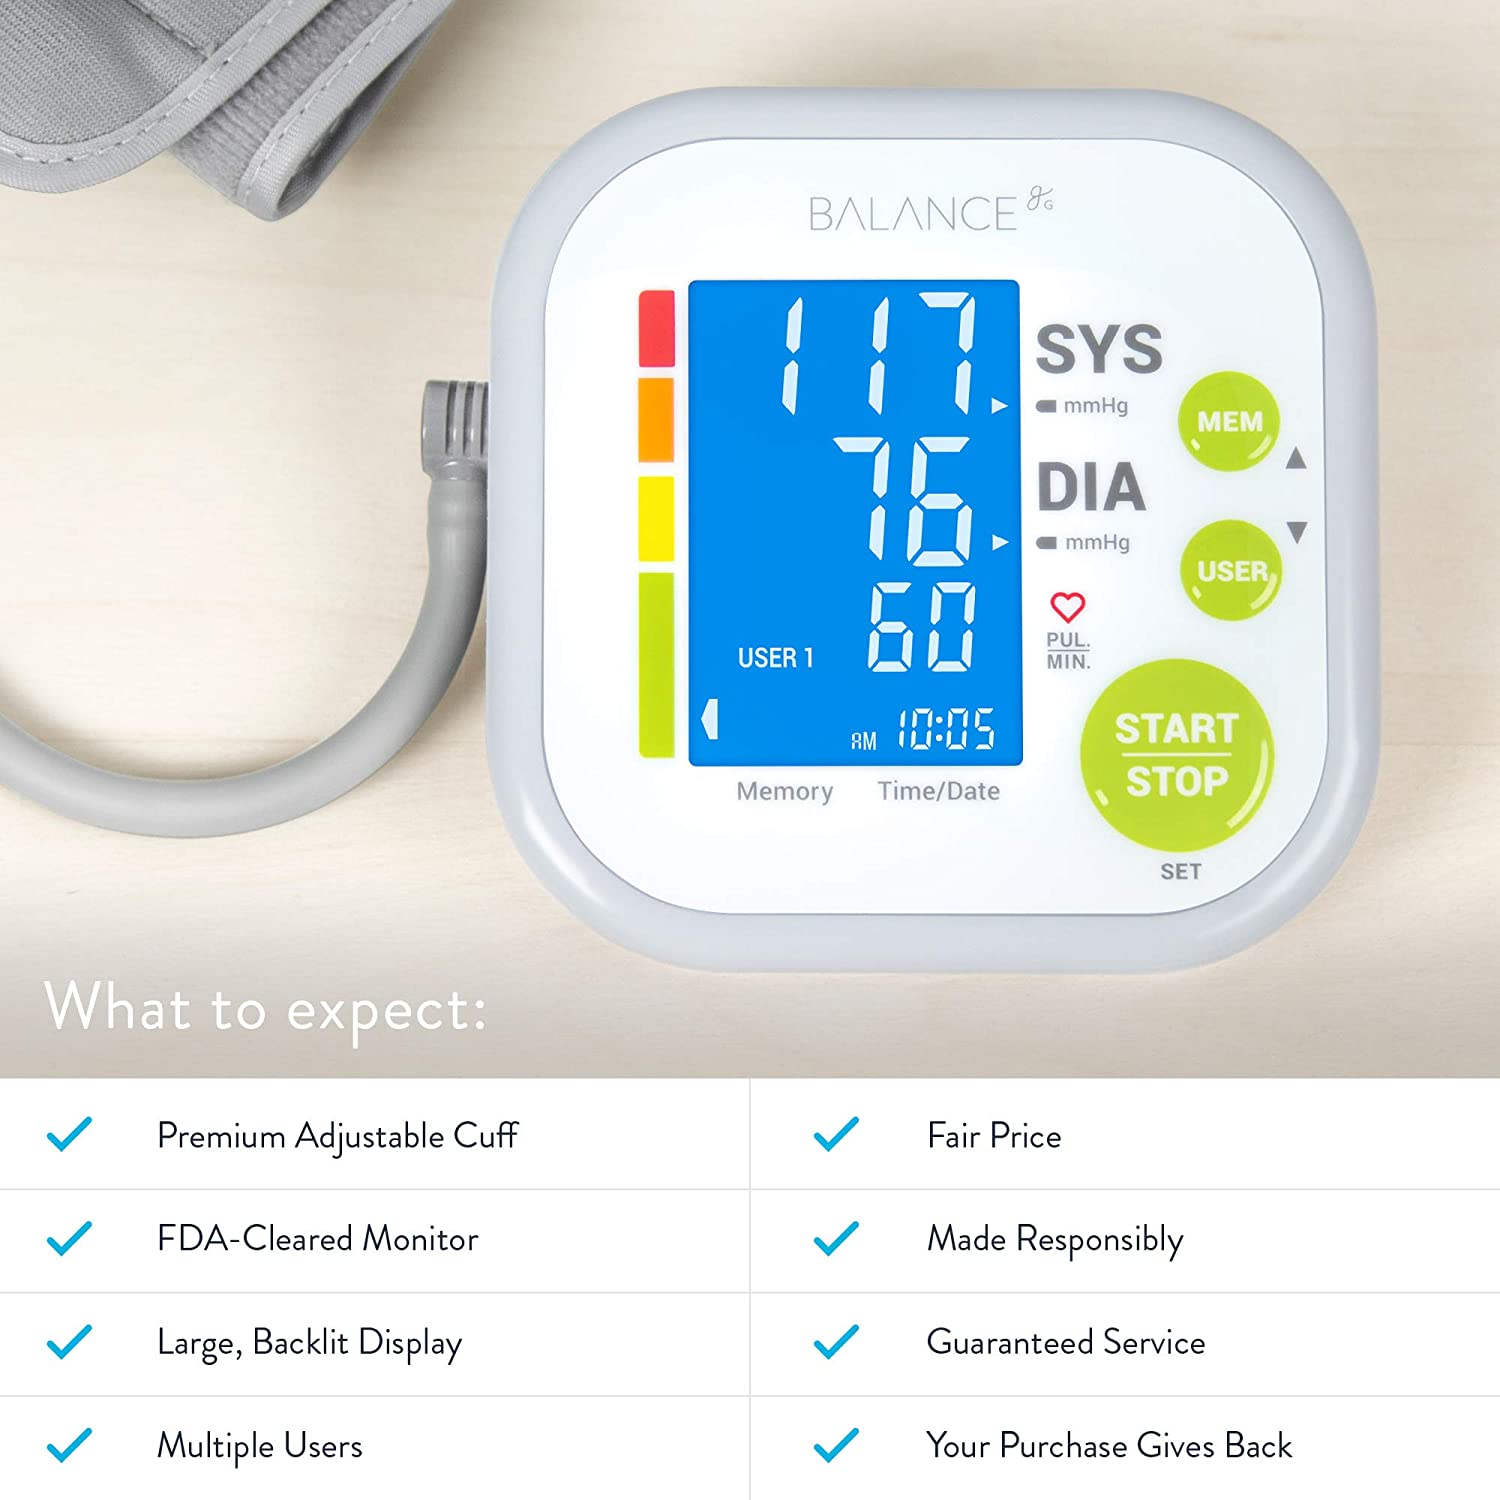 Greater Goods Blood Pressure Monitor Cuff Kit by Balance, Digital BP Meter with Large Display, Upper Arm Cuff, Set Also Comes with Tubing and Device ...